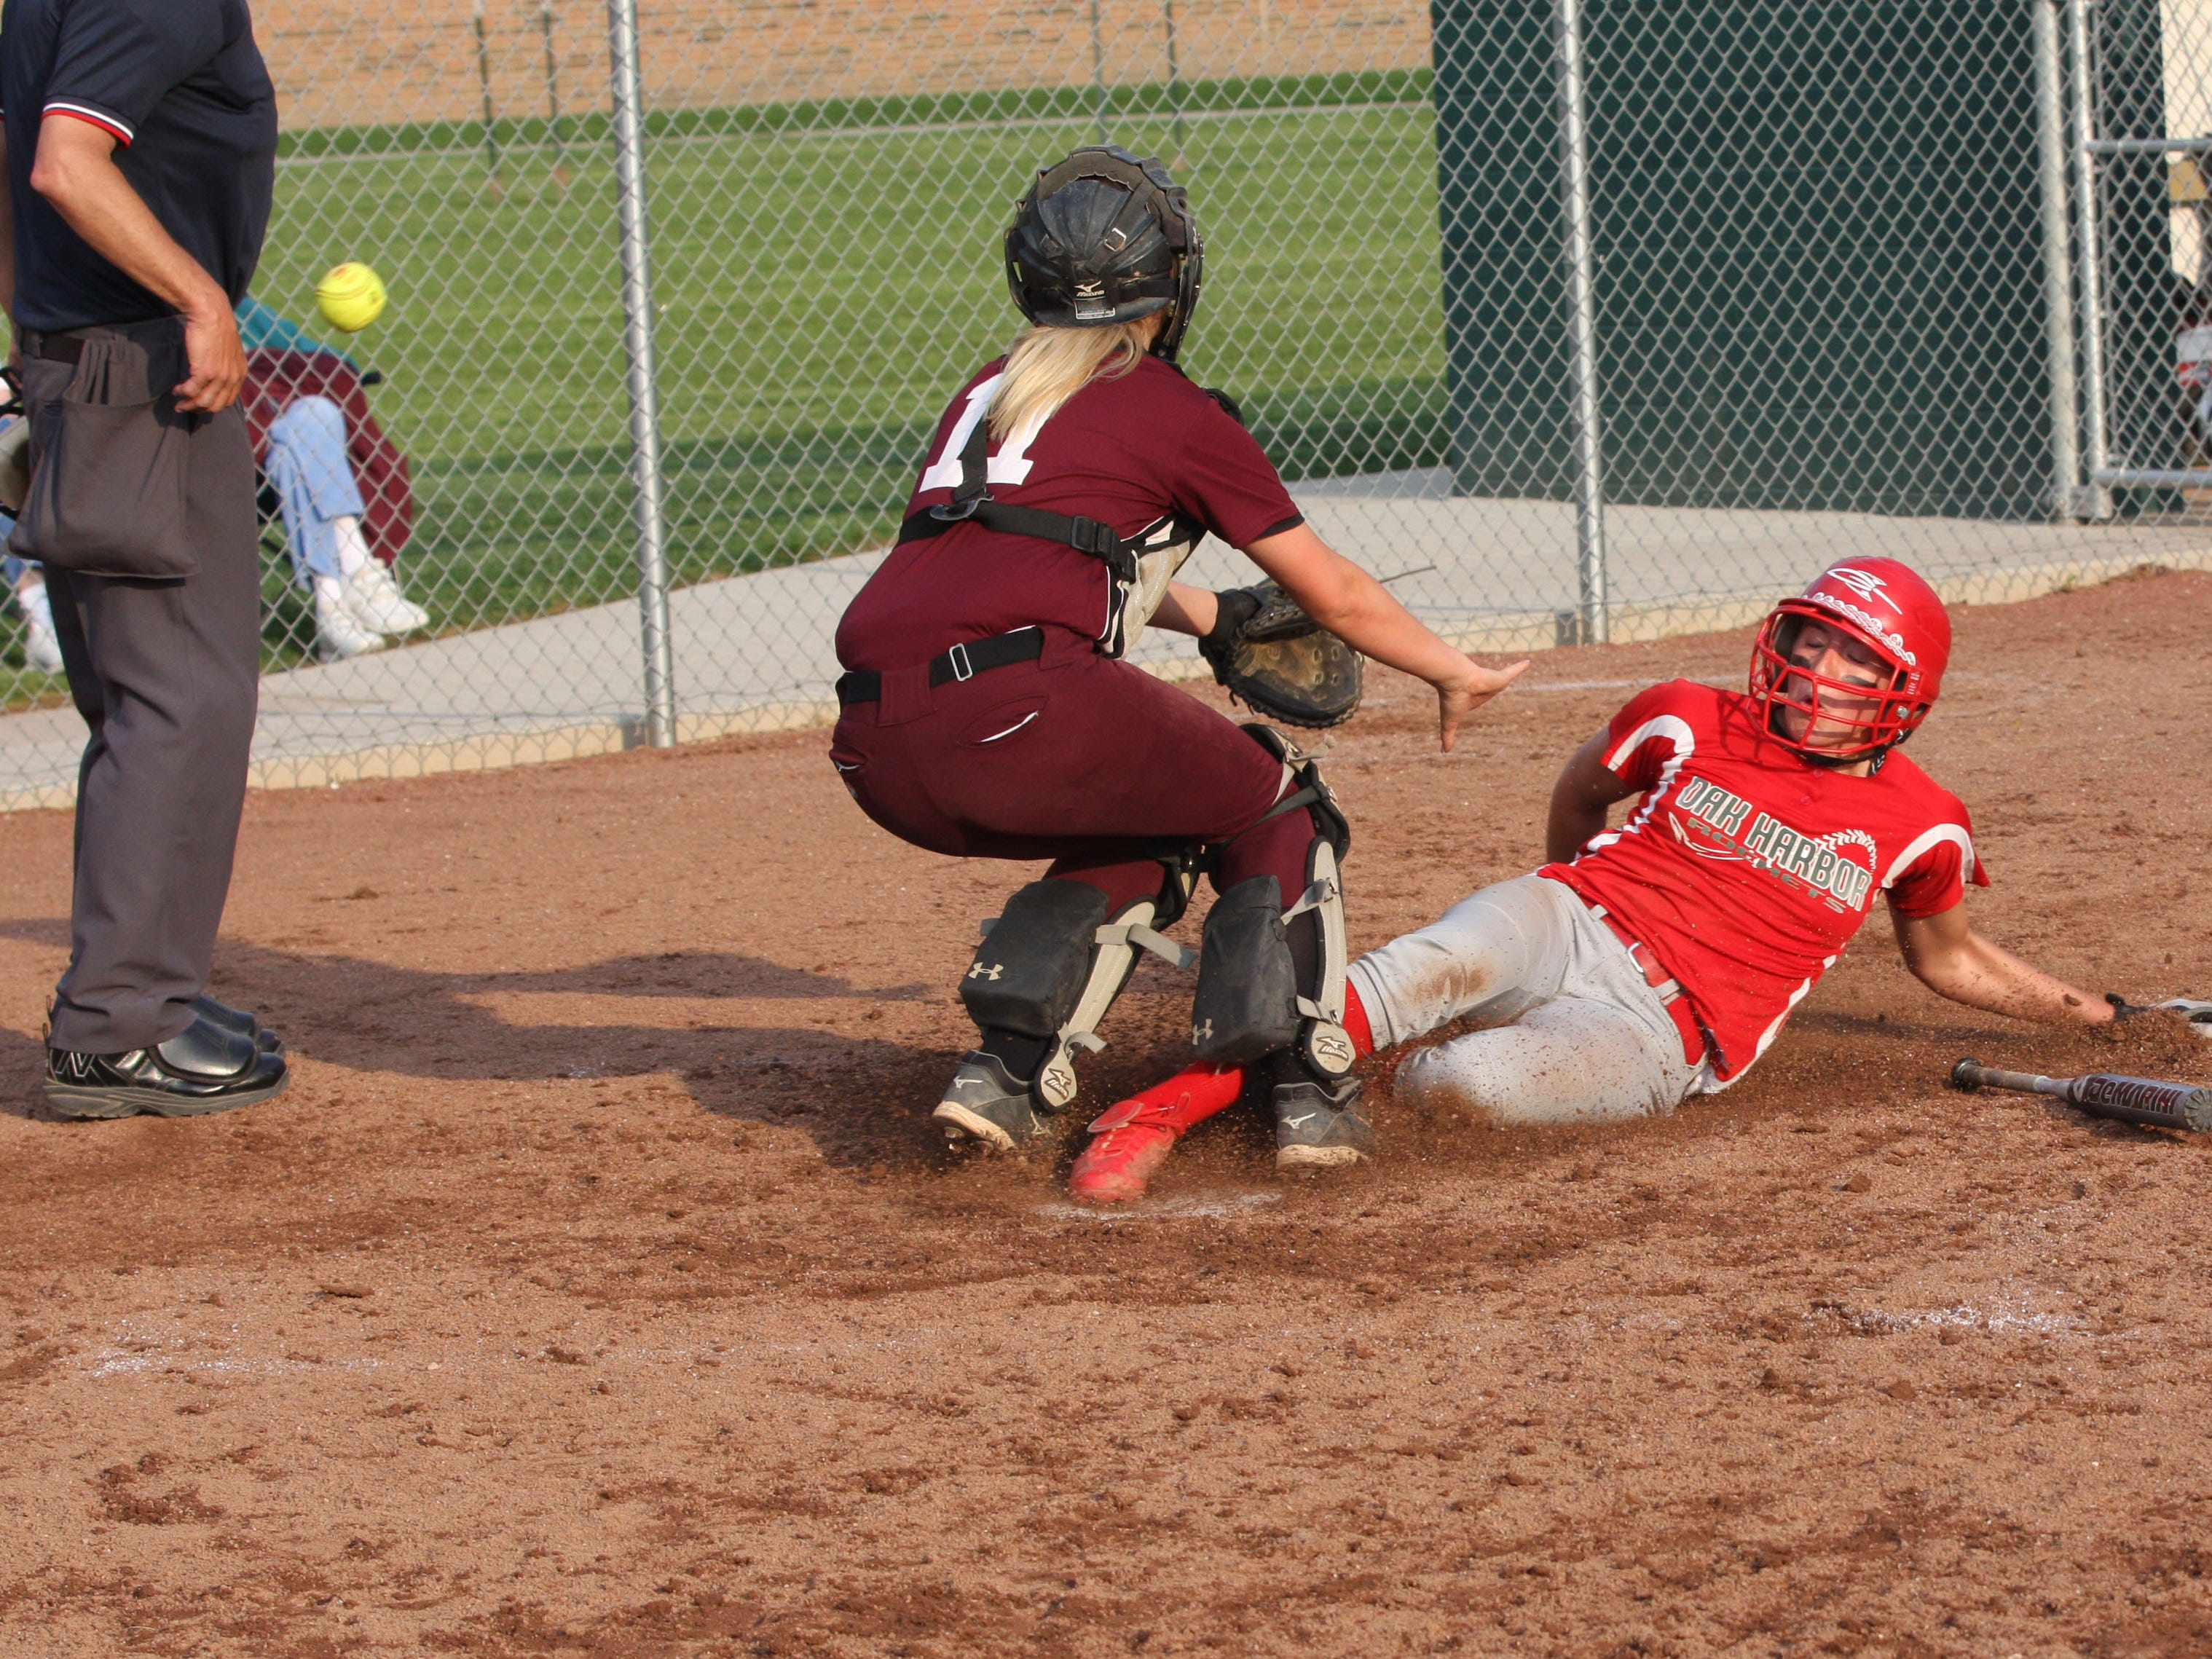 Oak Harbor's Ashley Riley scores the winning run Friday as the ball gets away from Willard's Callie Jones. The Rockets defeated Willard 2-1 in 12 innings in the sectional tournament at Oak Harbor.